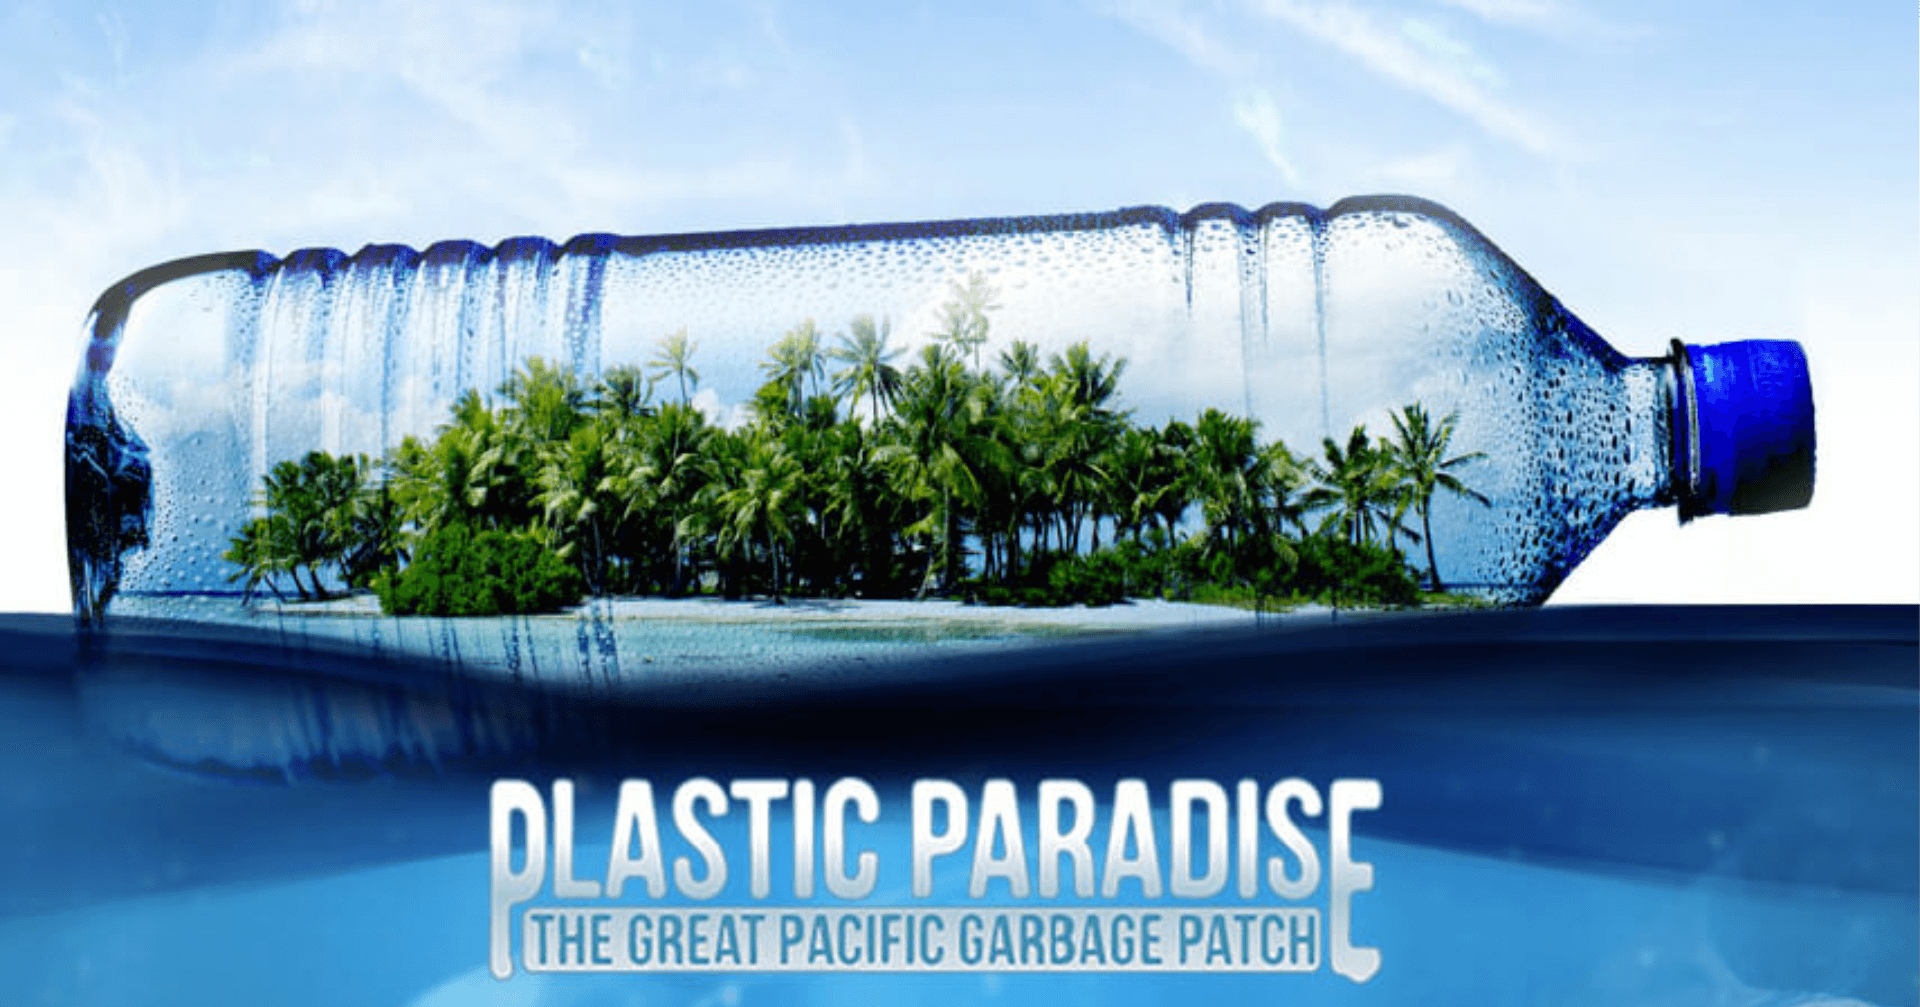 Plastic Paradise, The Great Pacific Garbage Patch- a must-watch environmental documentary